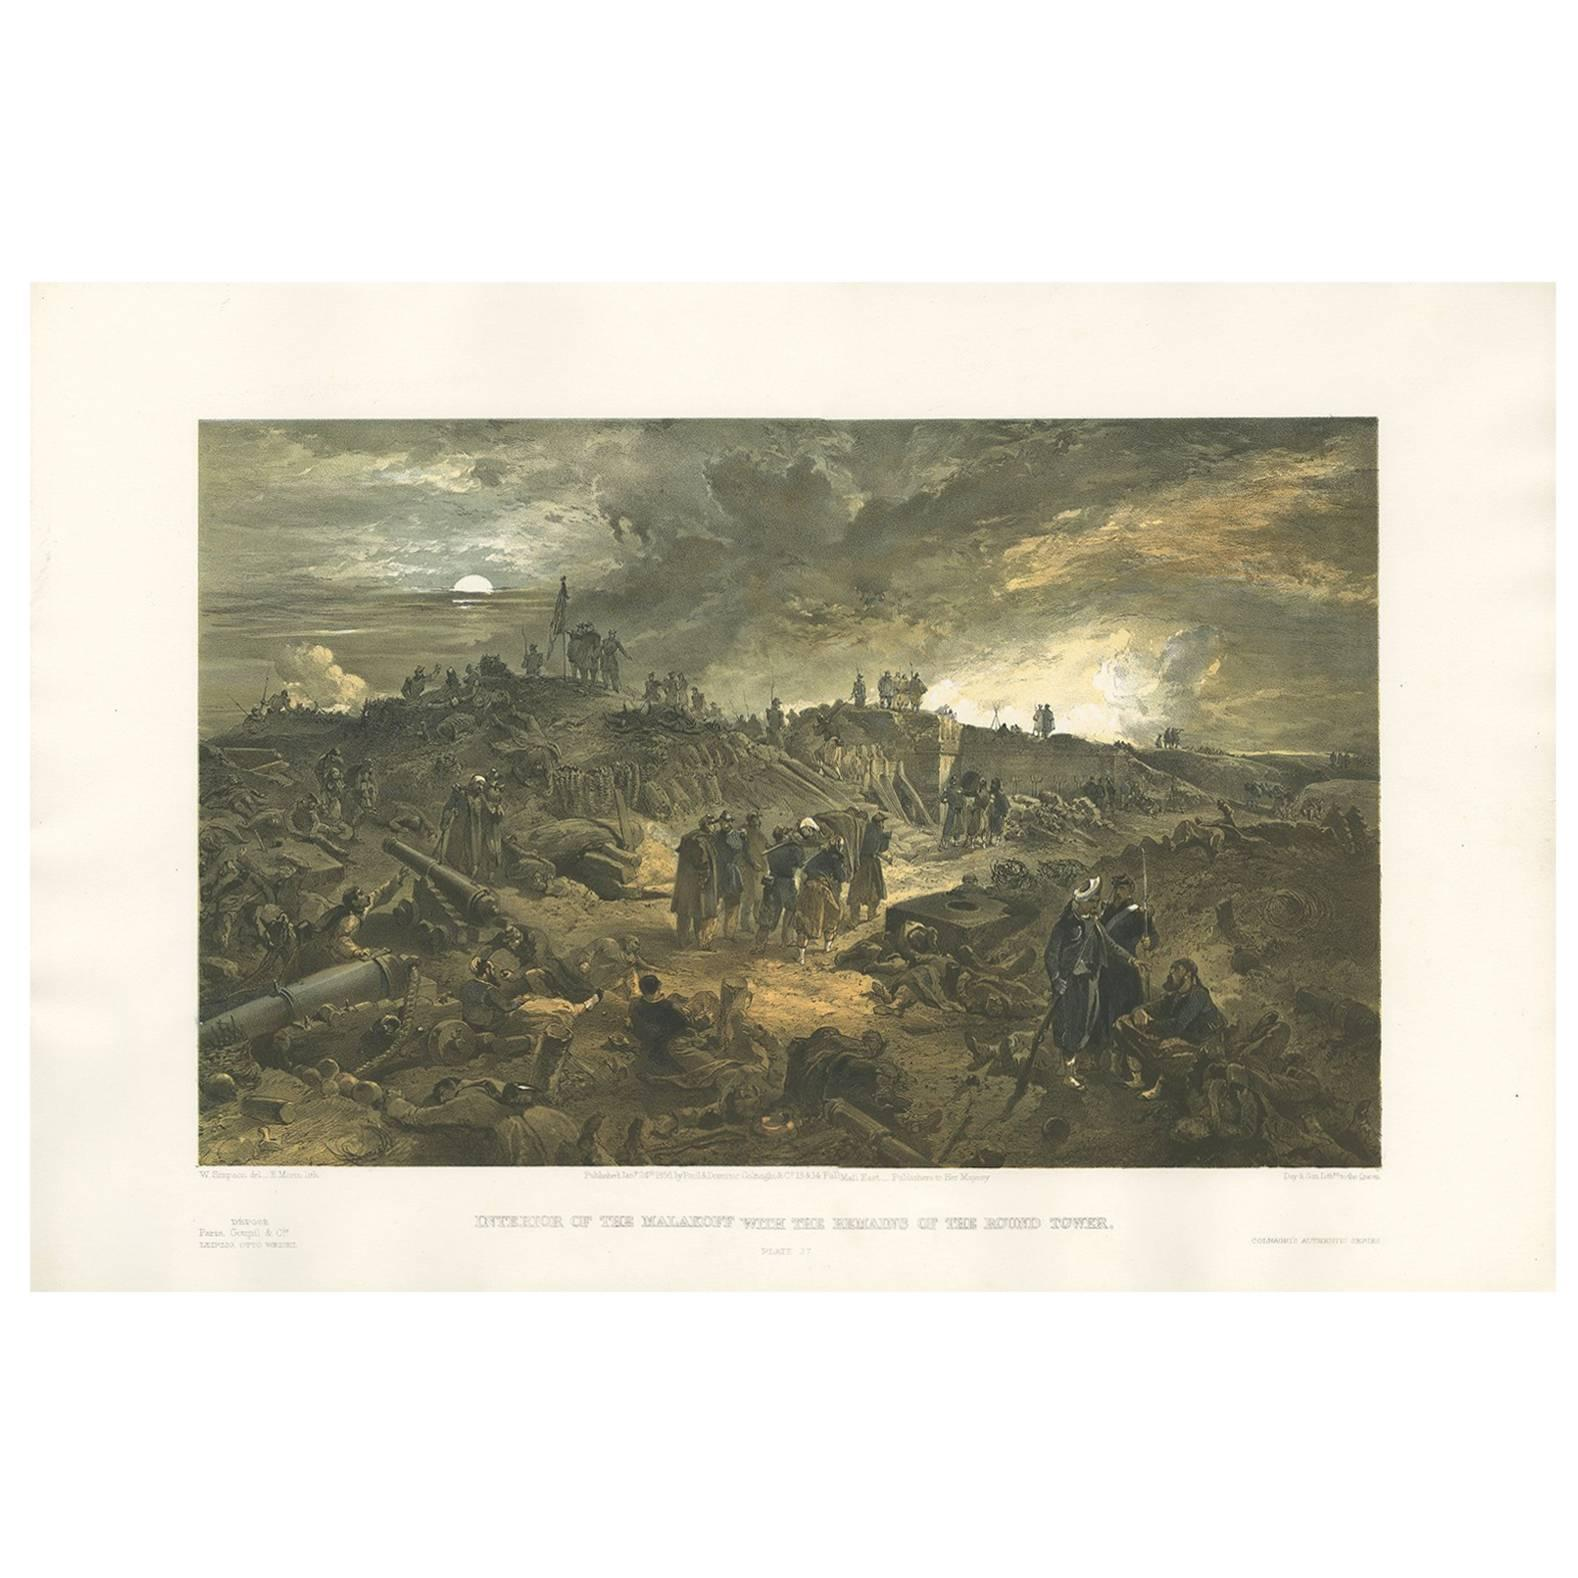 Antique Print with a View of the Malakoff 'Crimean War' by W. Simpson, 1855